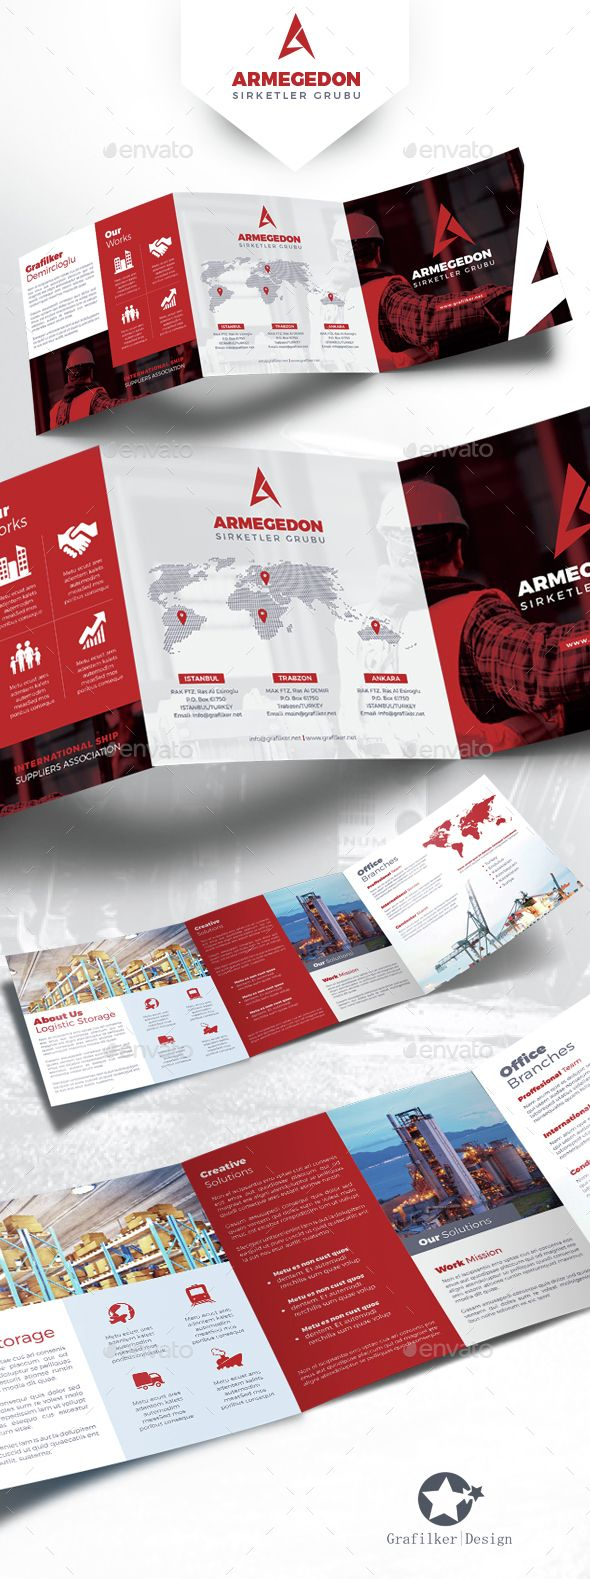 International Square Tri-Fold Brochure Template PSD, InDesign INDD. Download here: http://graphicriver.net/item/international-square-trifold-brochure-templates/14631913?ref=ksioks